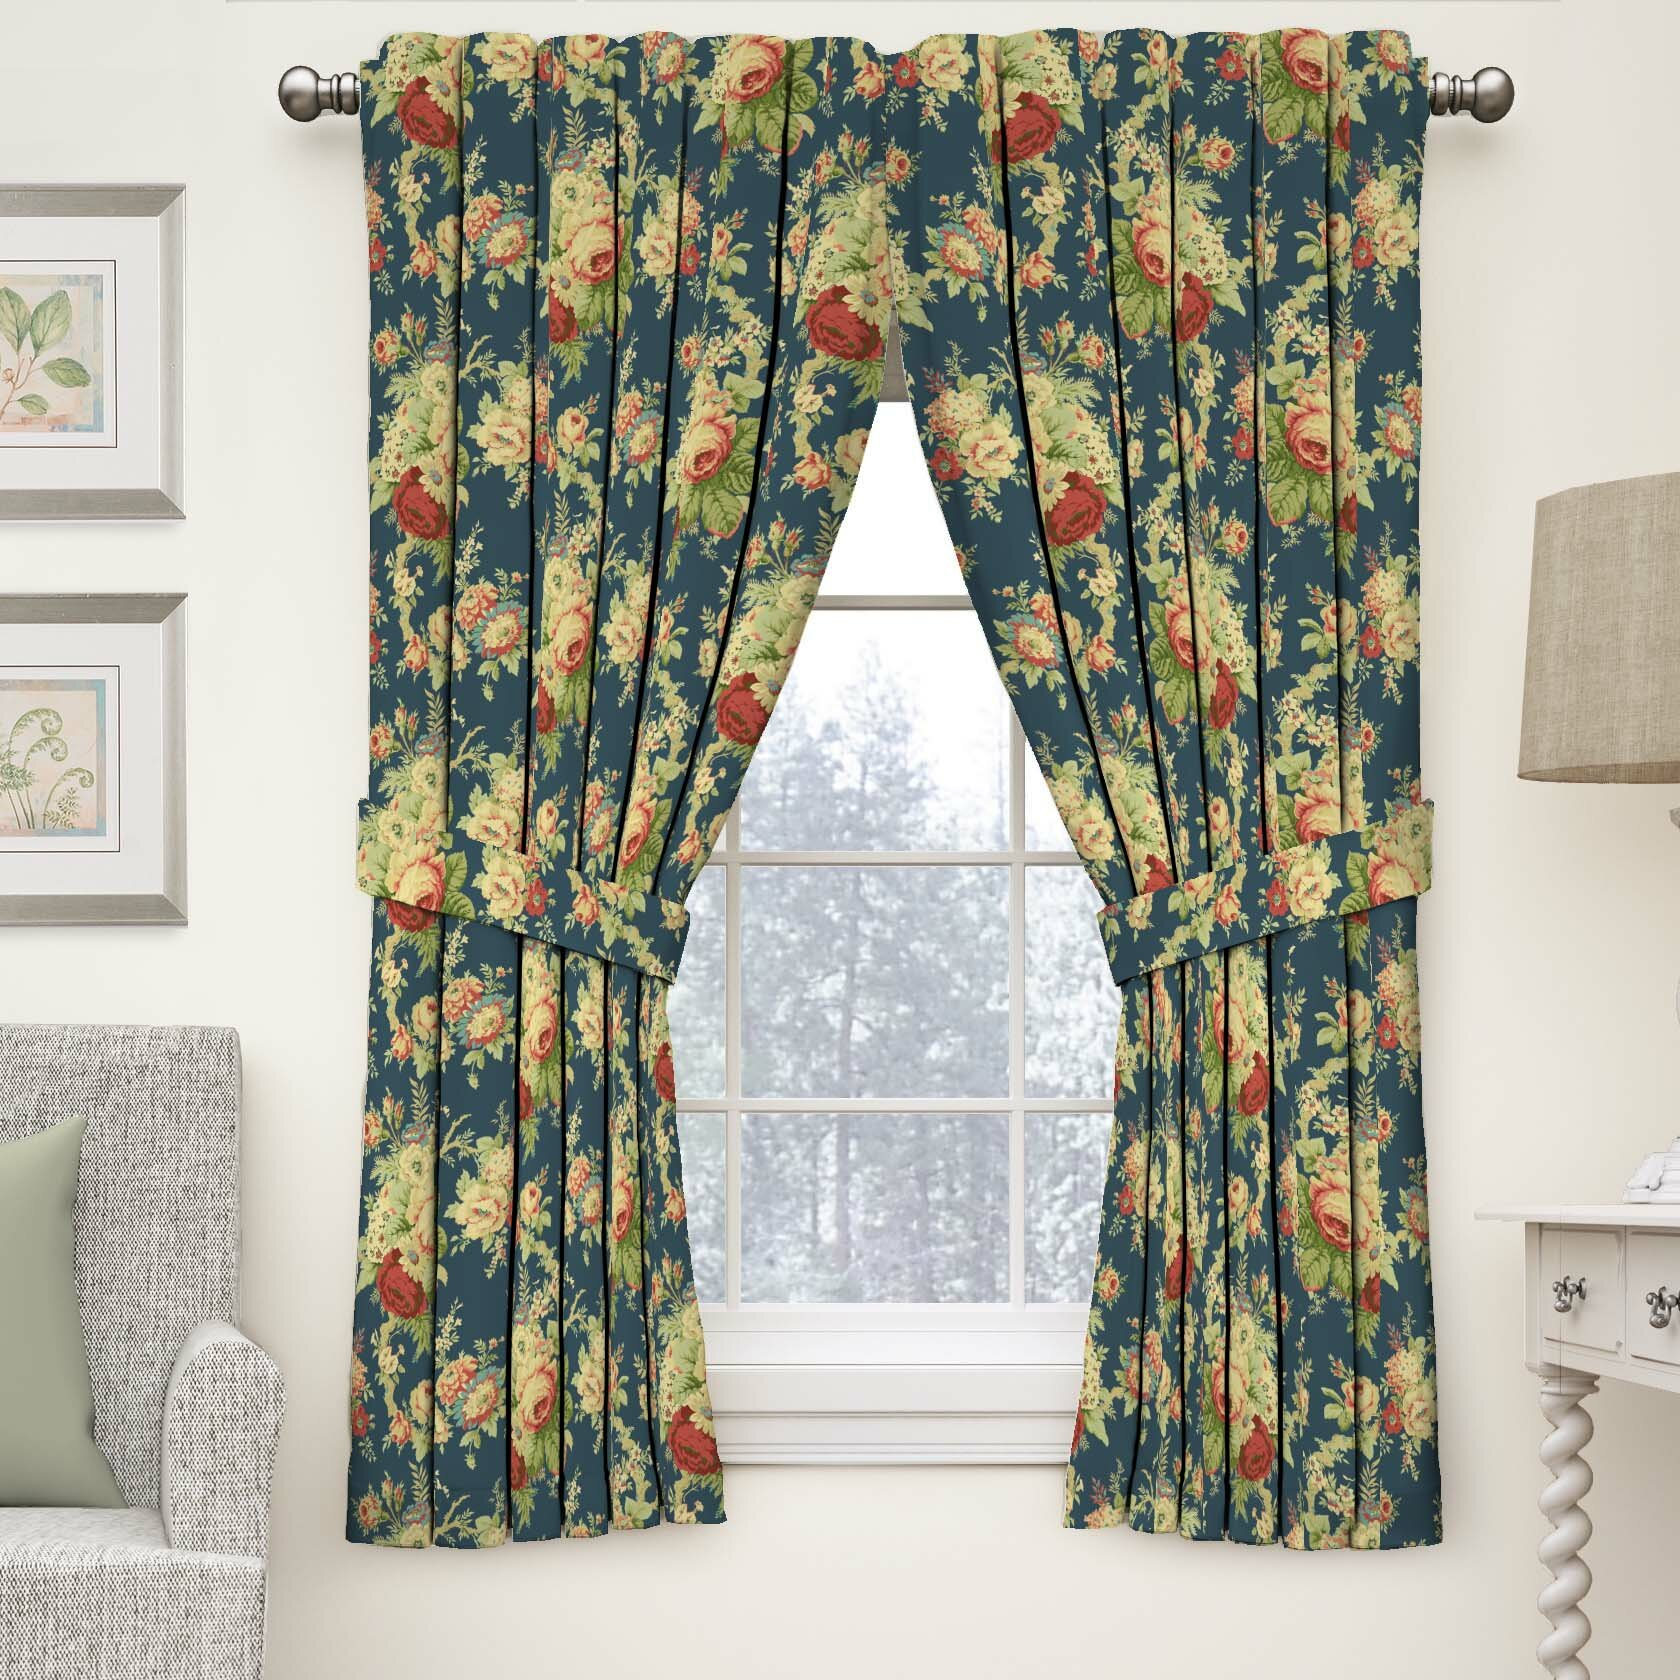 Sanctuary Rose Nature/floral Semi Sheer Rod Pocket Single Curtain Panel Regarding Luxury Collection Summit Sheer Curtain Panel Pairs (View 9 of 20)